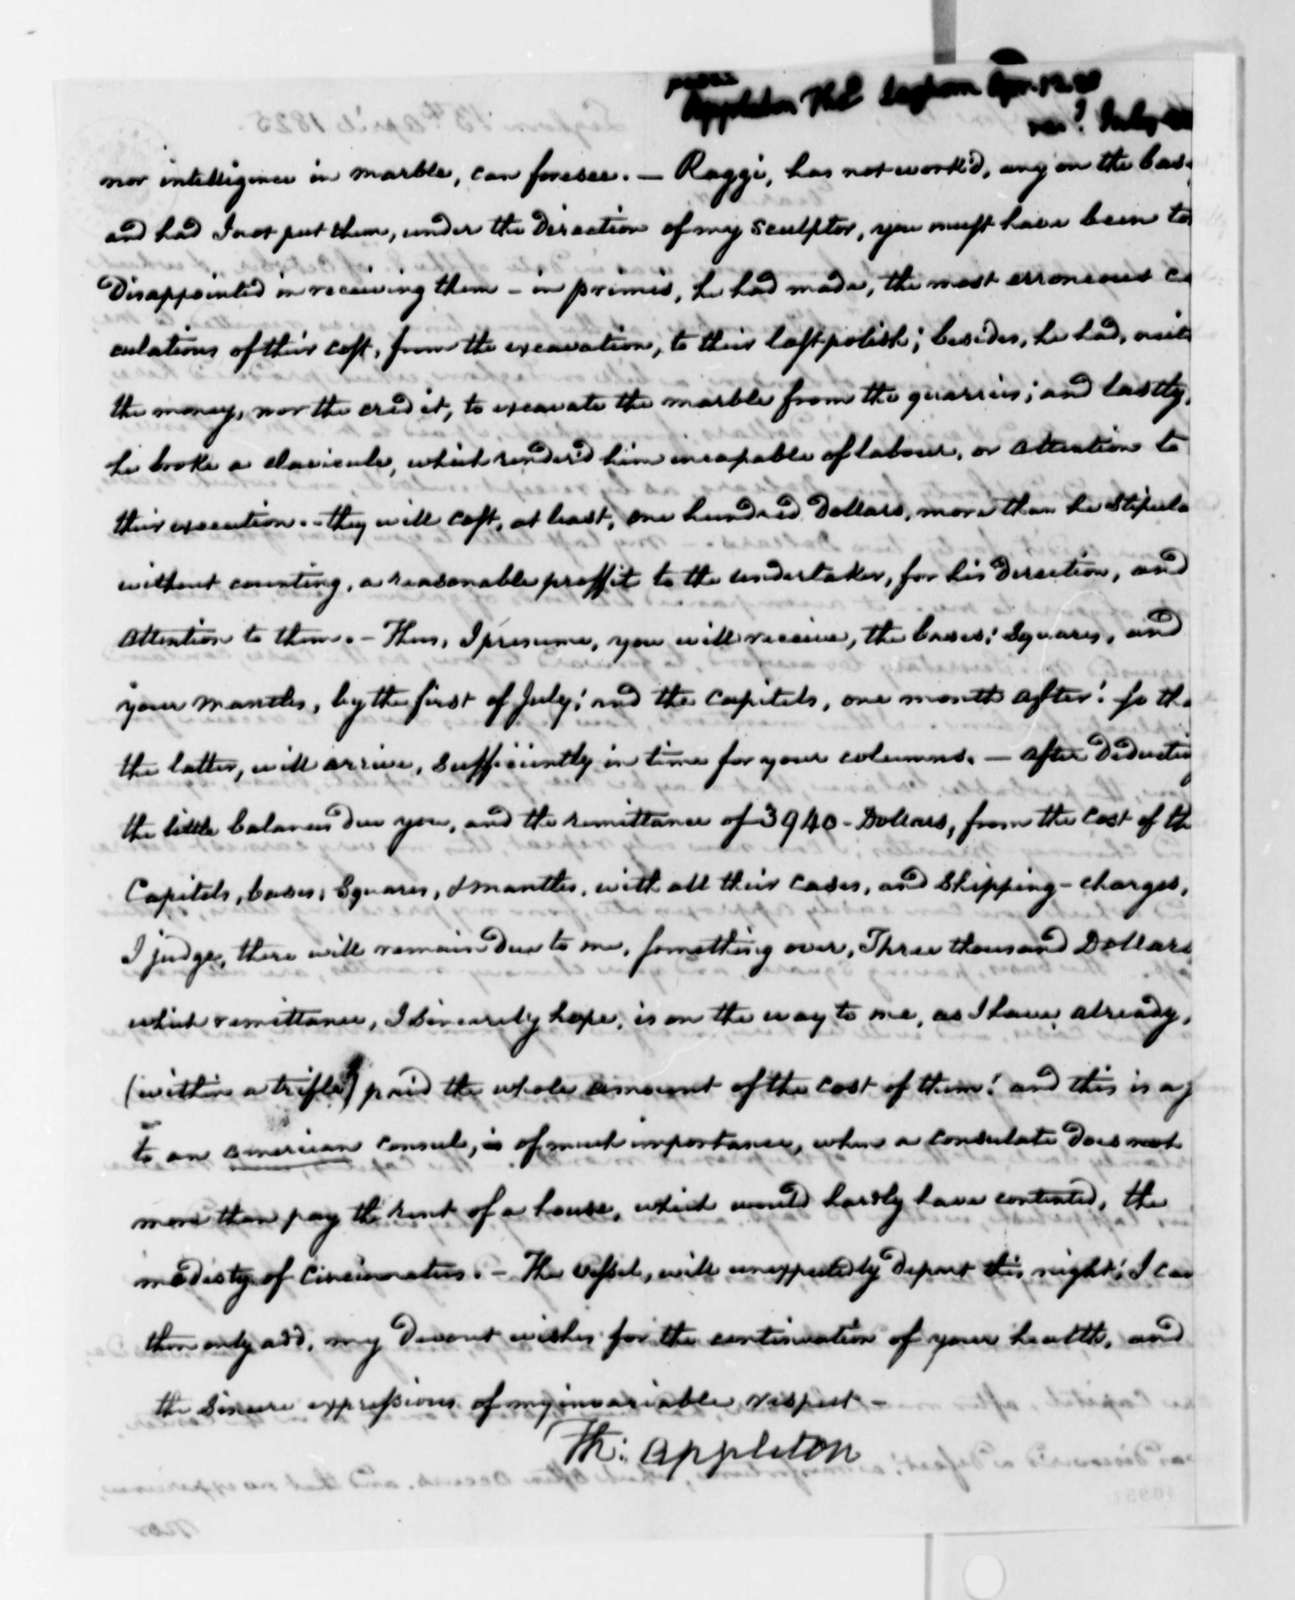 Thomas Appleton to Thomas Jefferson, April 13, 1825